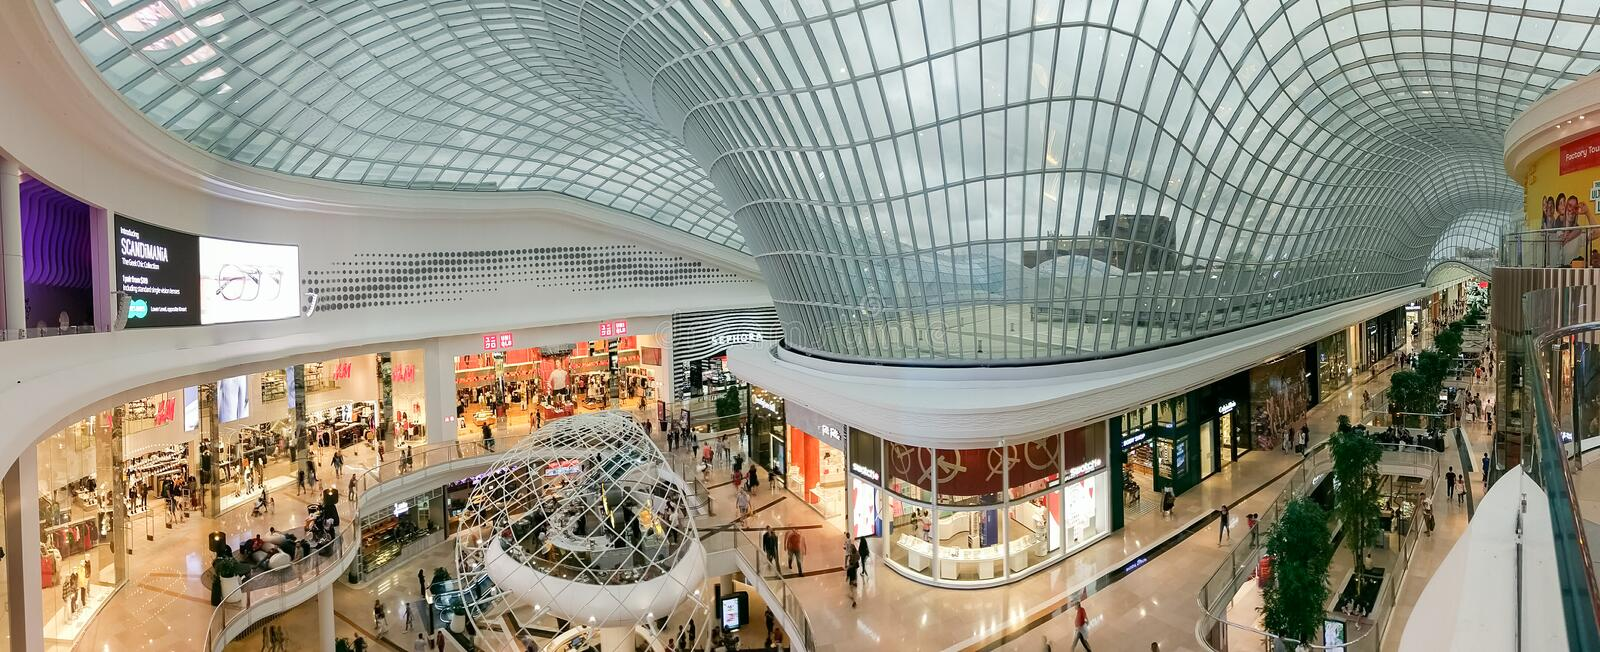 Atrium at Chadstone Shopping Centre in Melbourne, Australia. Melbourne, Australia - February 24, 2018: atrium at Chadstone Shopping Centre opened in October 2016 stock photos